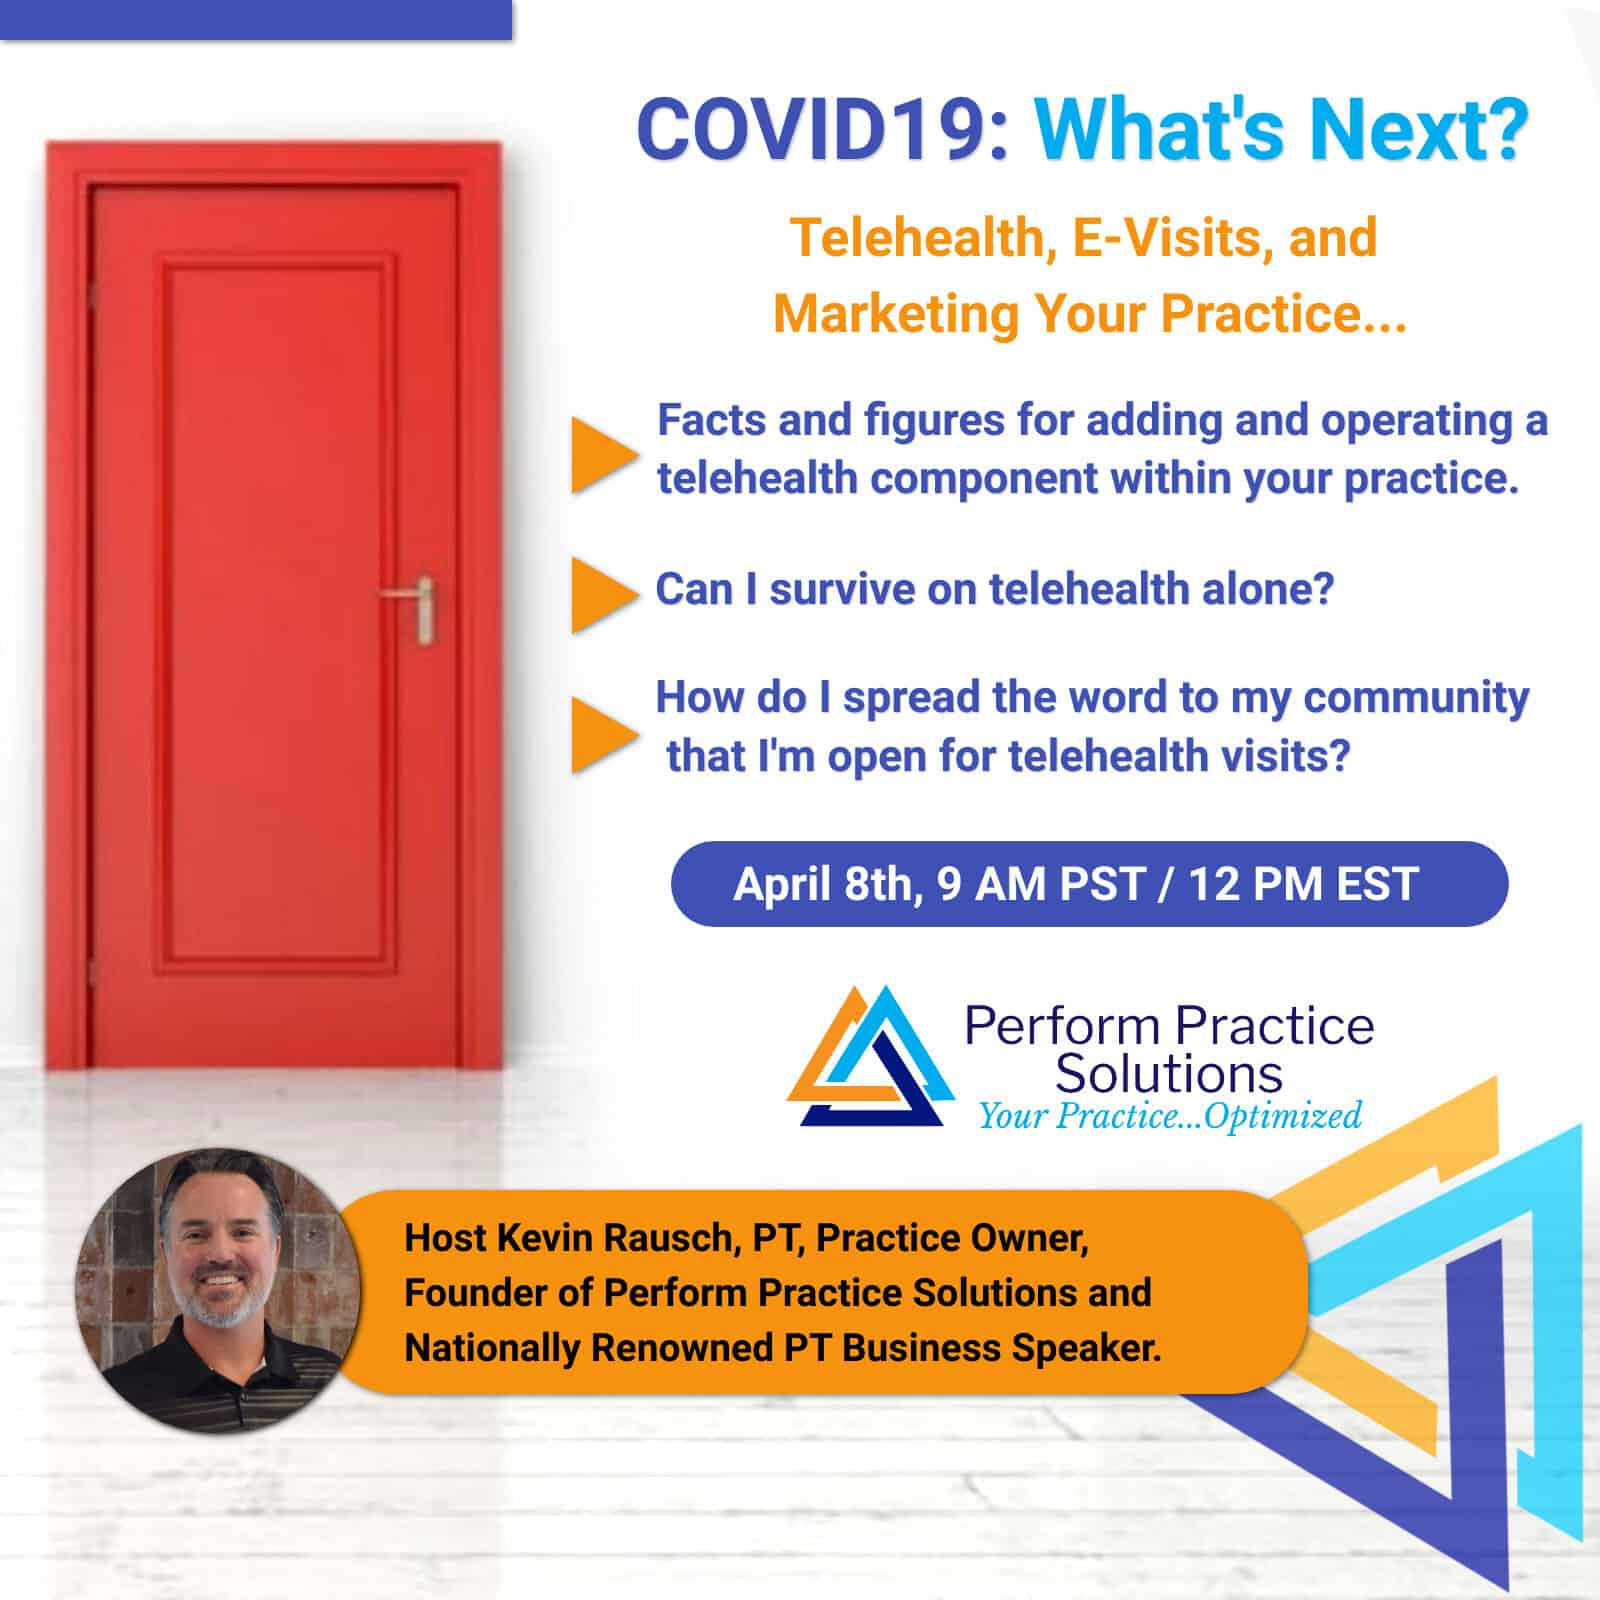 Marketing webinar: 5 steps to marketing your practice after COVID-19